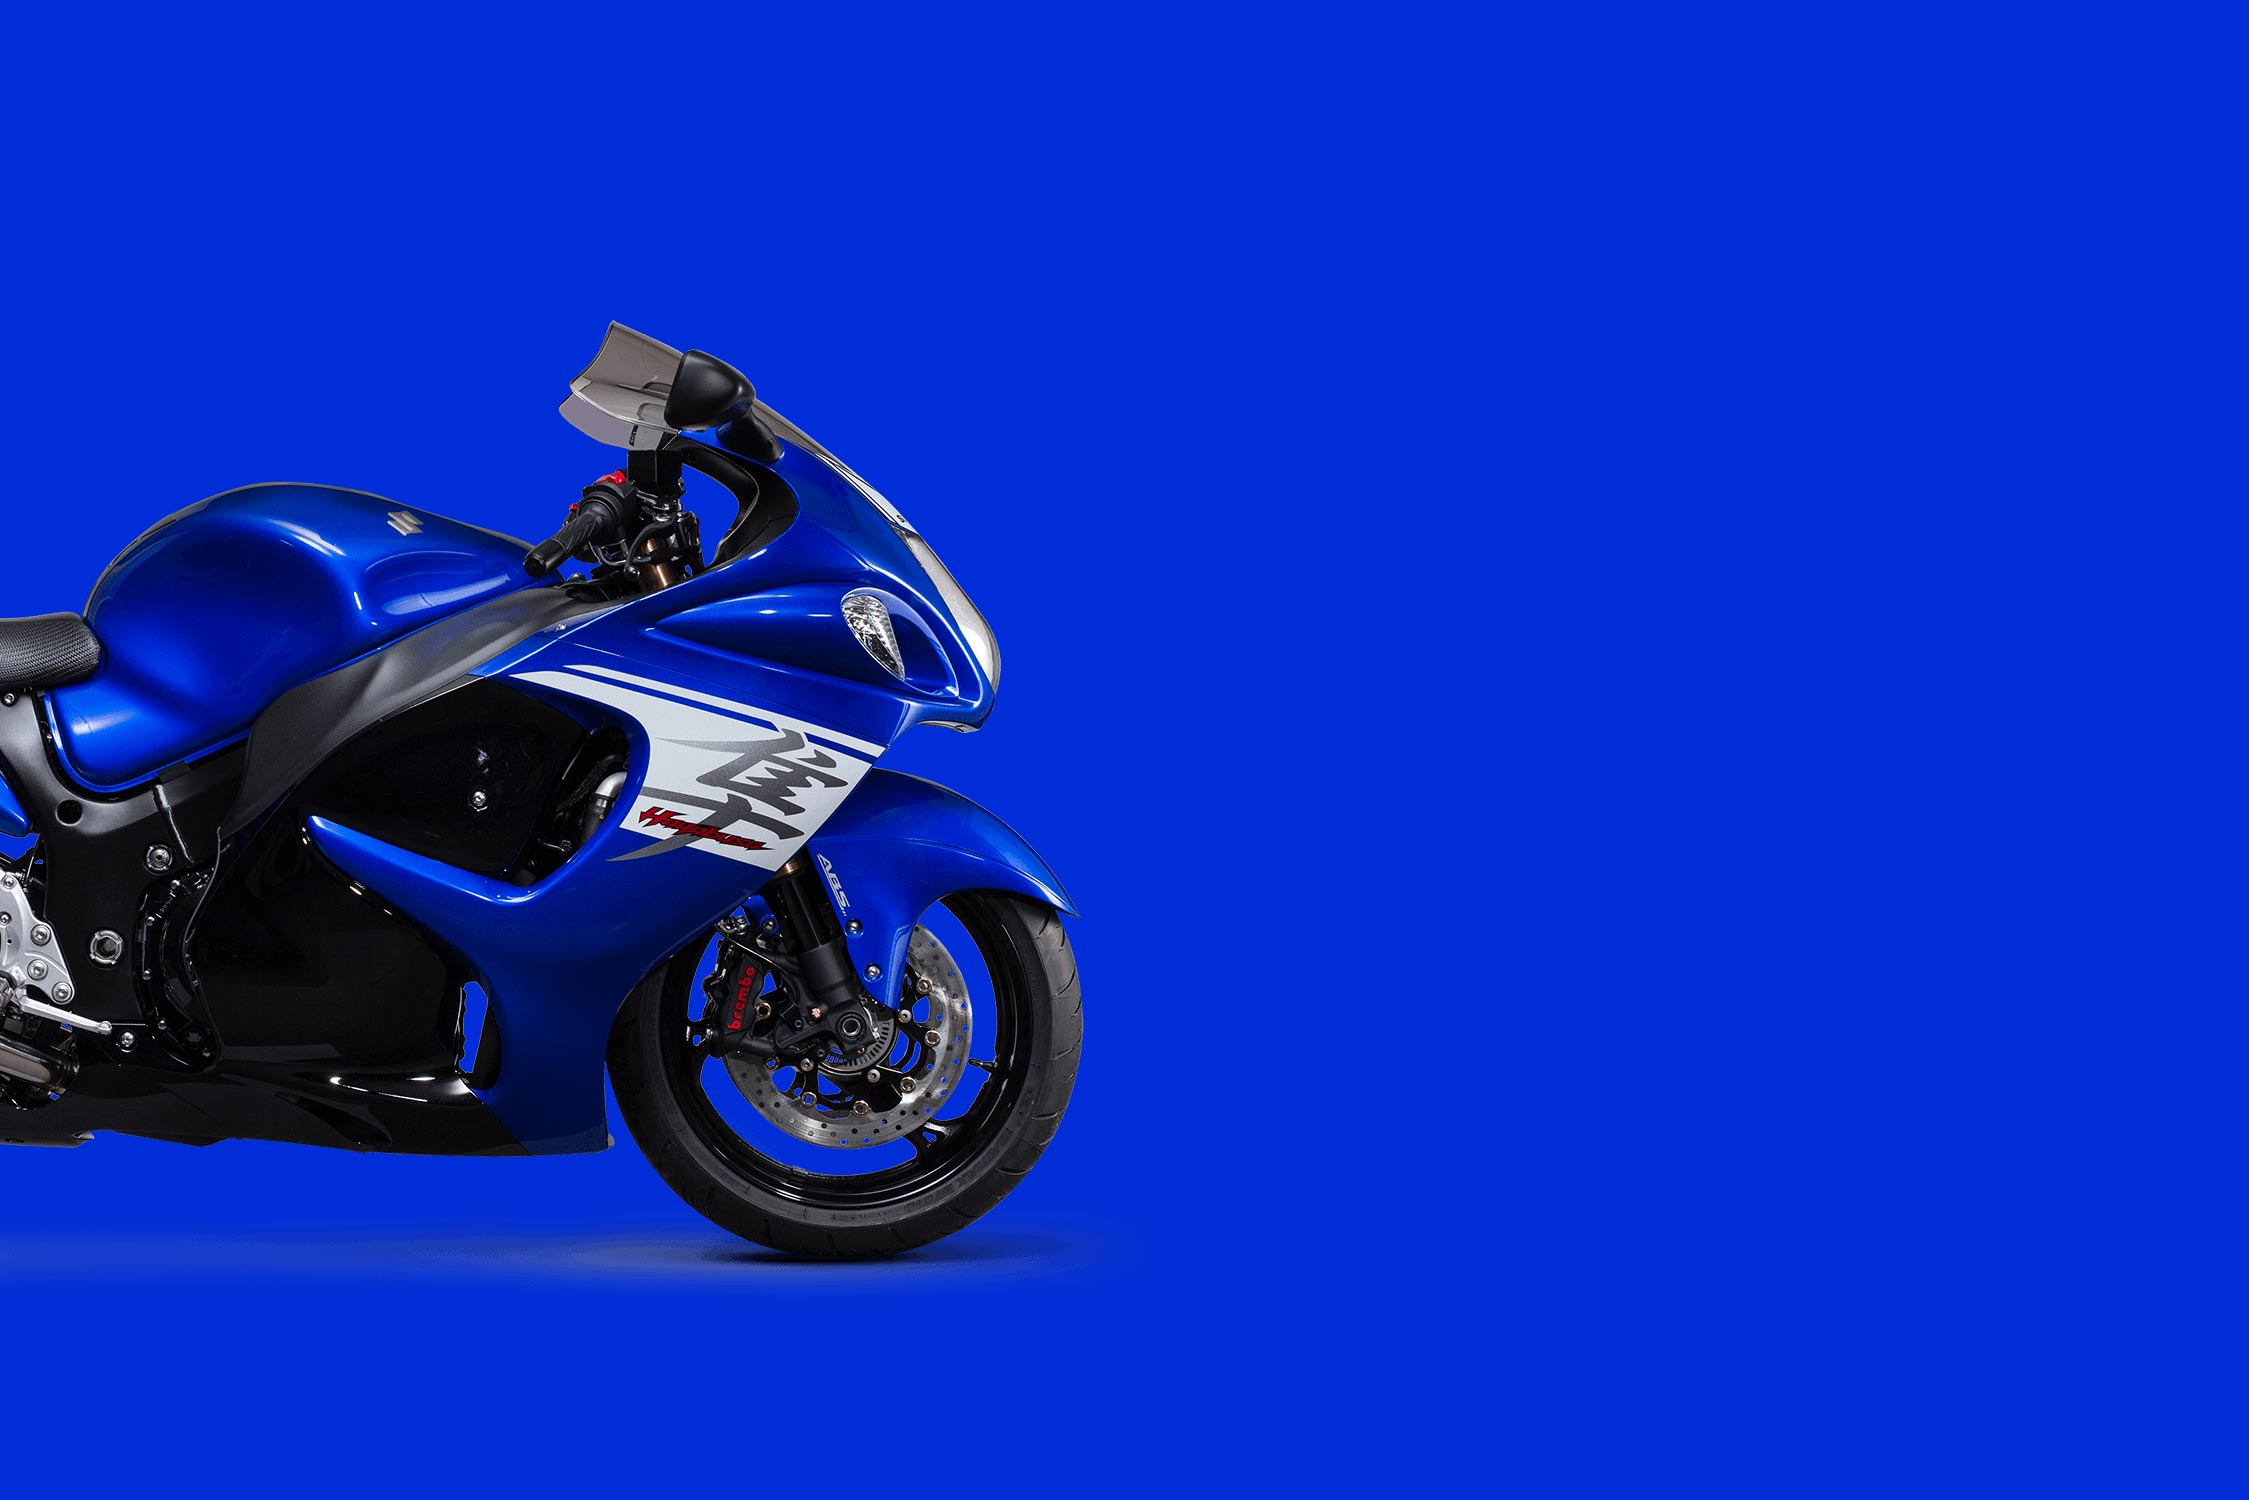 In This Installment Of U201cThis Weeku0027s Suzuki Hayabusa Rumor,u201d We Again Take A  Look At The Motor Of This Venerable Sport Bike. The Rumor Going Around The  ...